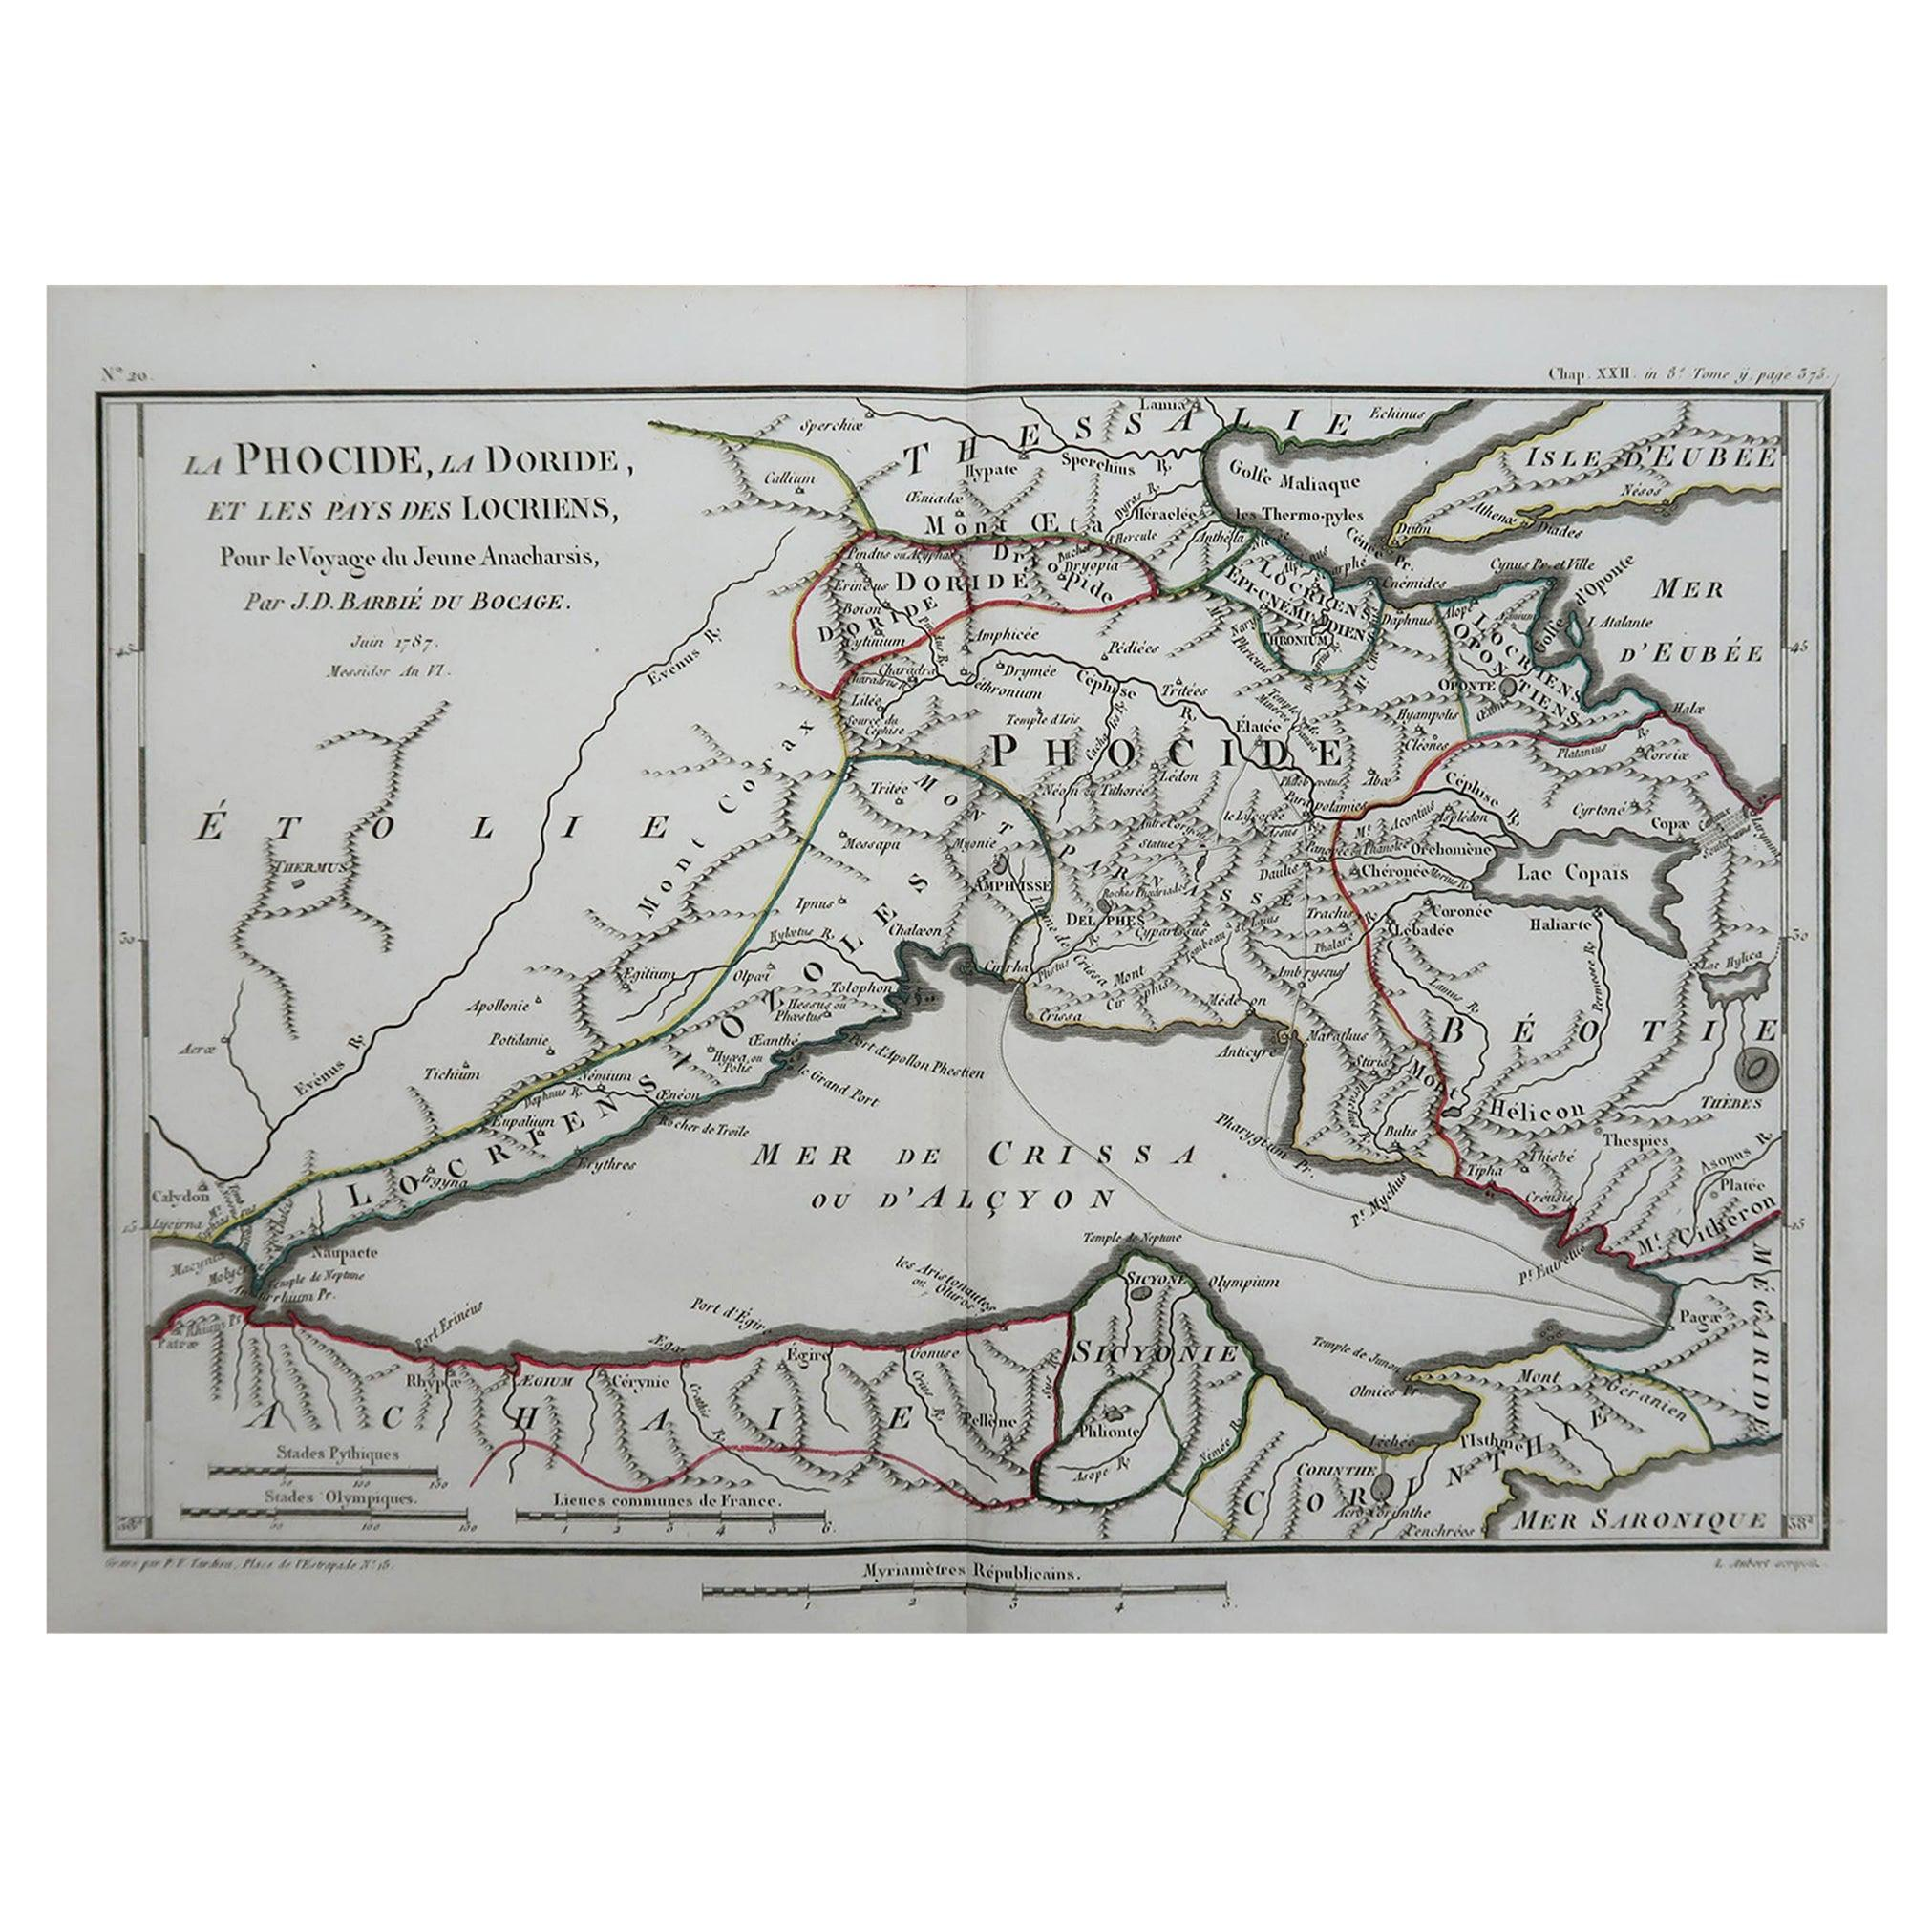 Original Antique Map of Ancient Greece, Phocis, Gulf of Corinth, 1787